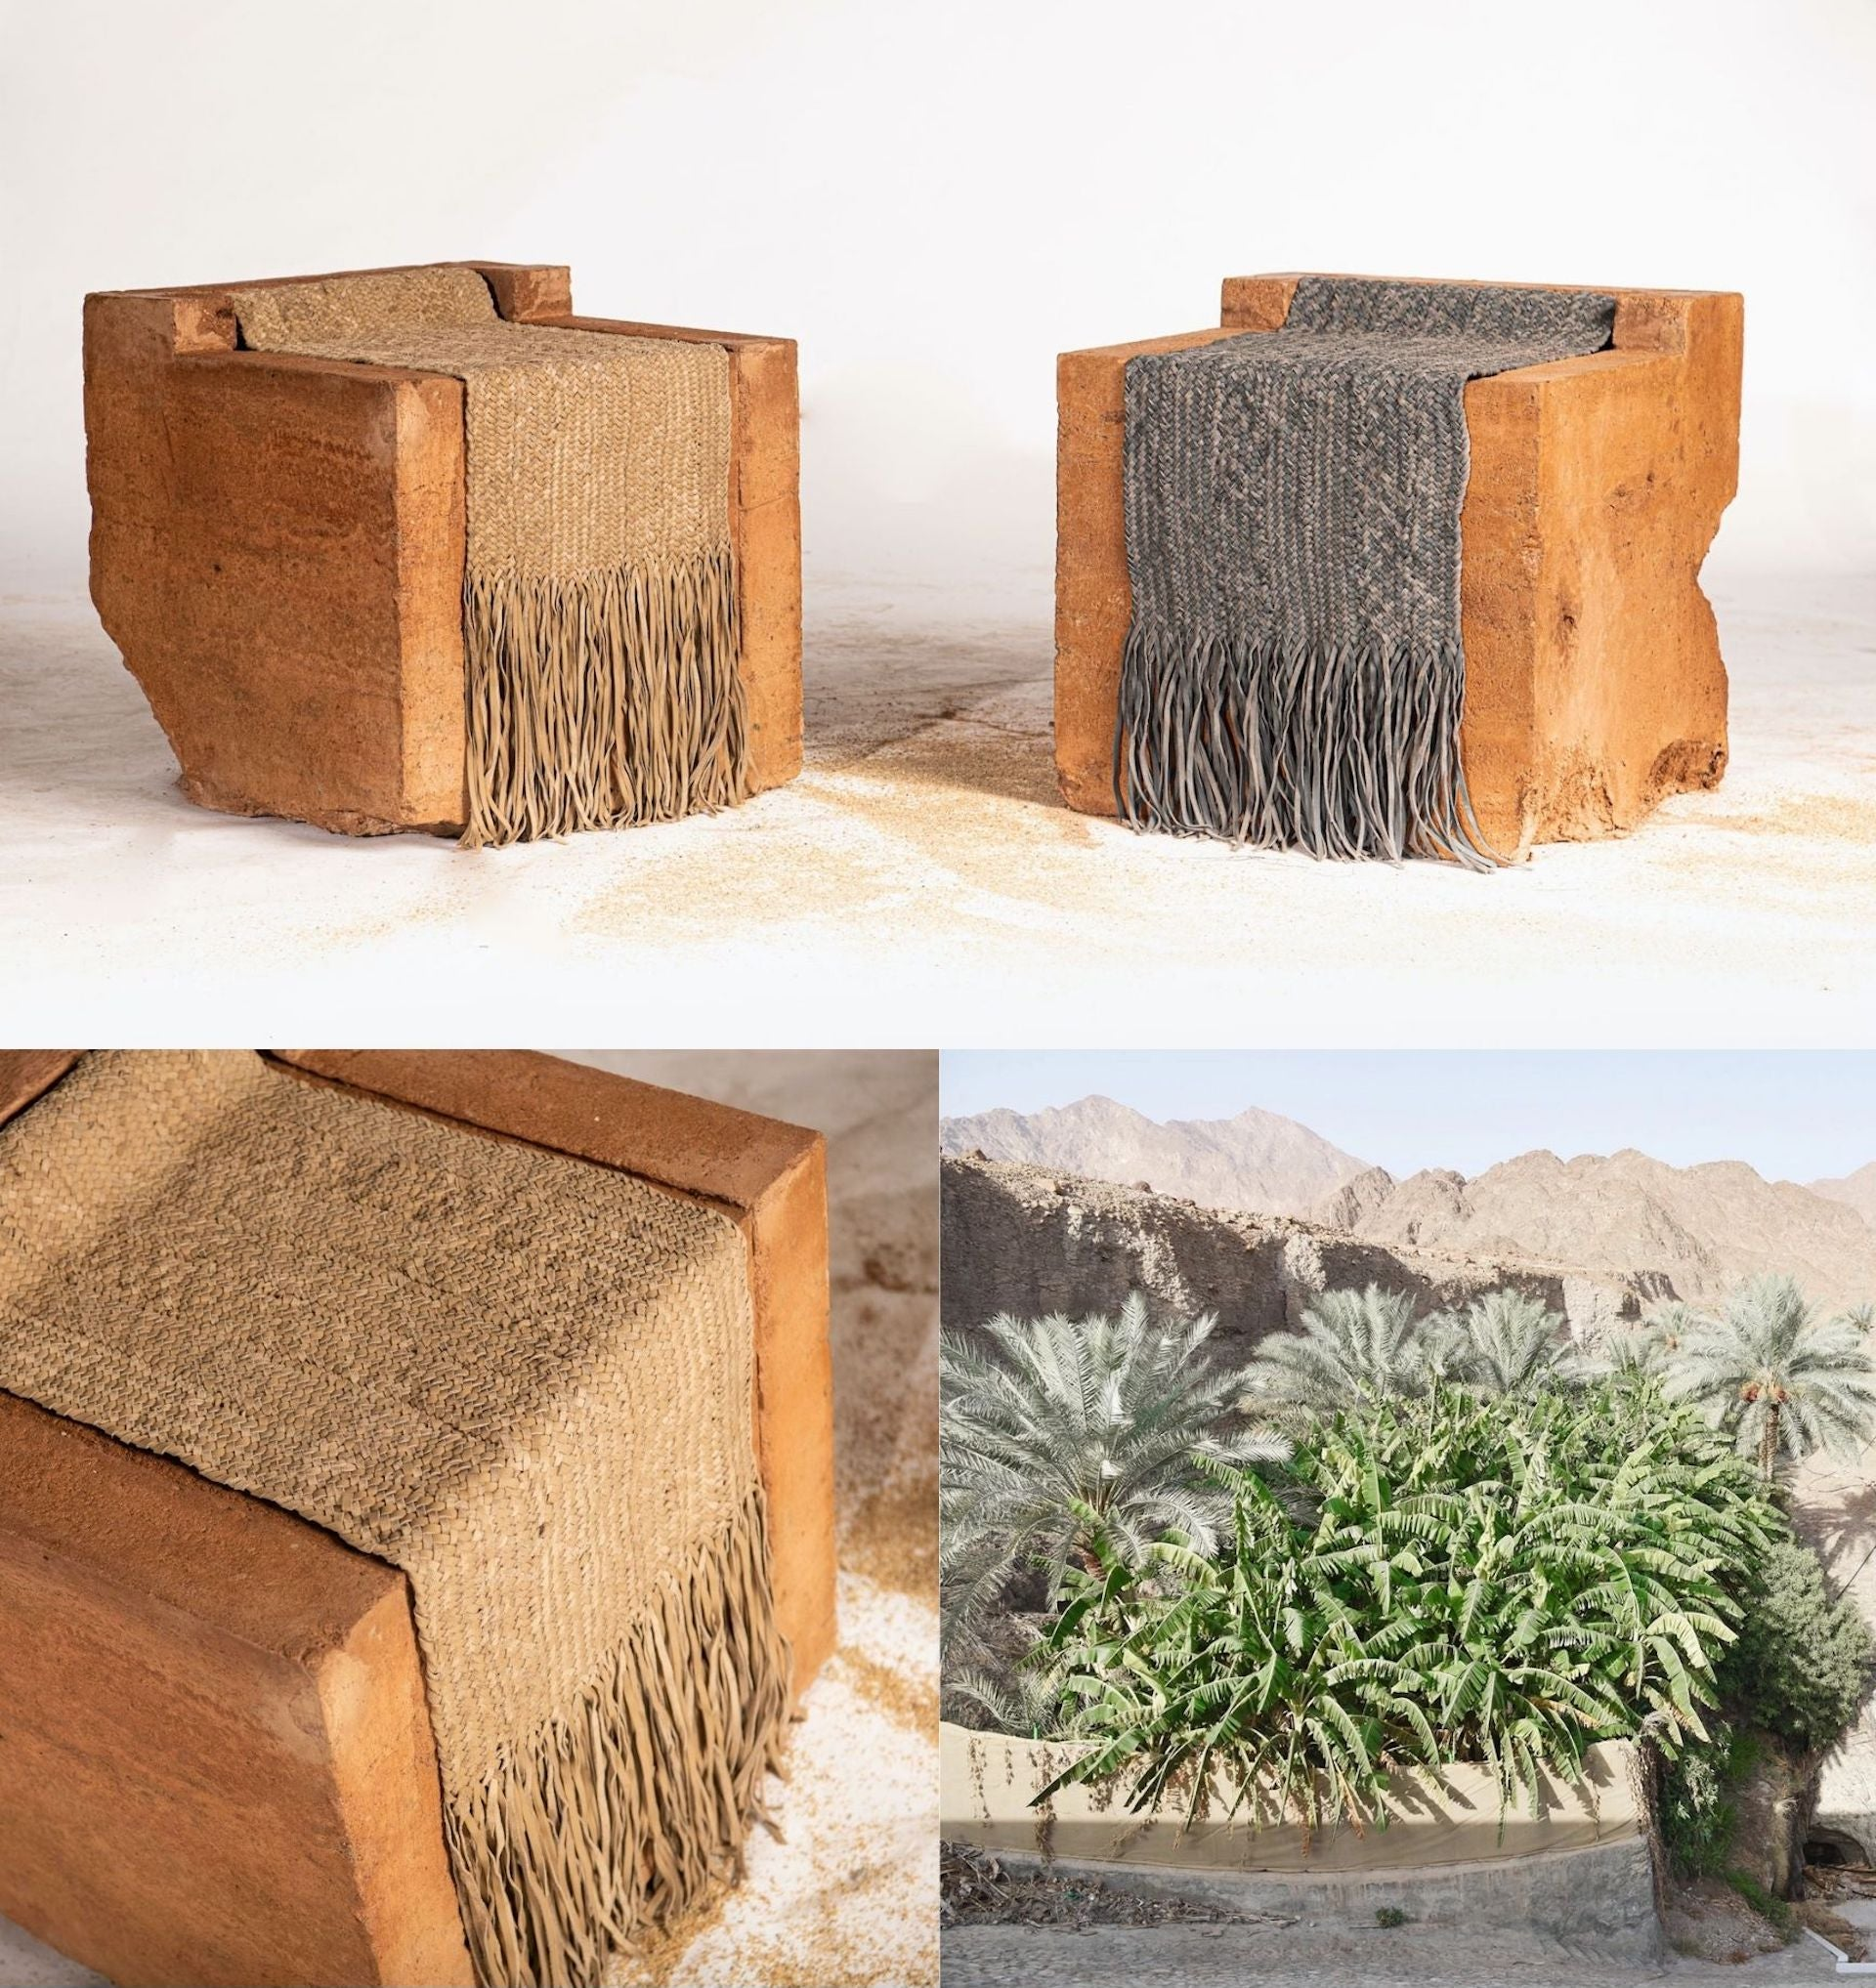 Safeefah x Sand Casting Collection. Photos © Irthi Contemporary Crafts Council and Architecture + Other Things